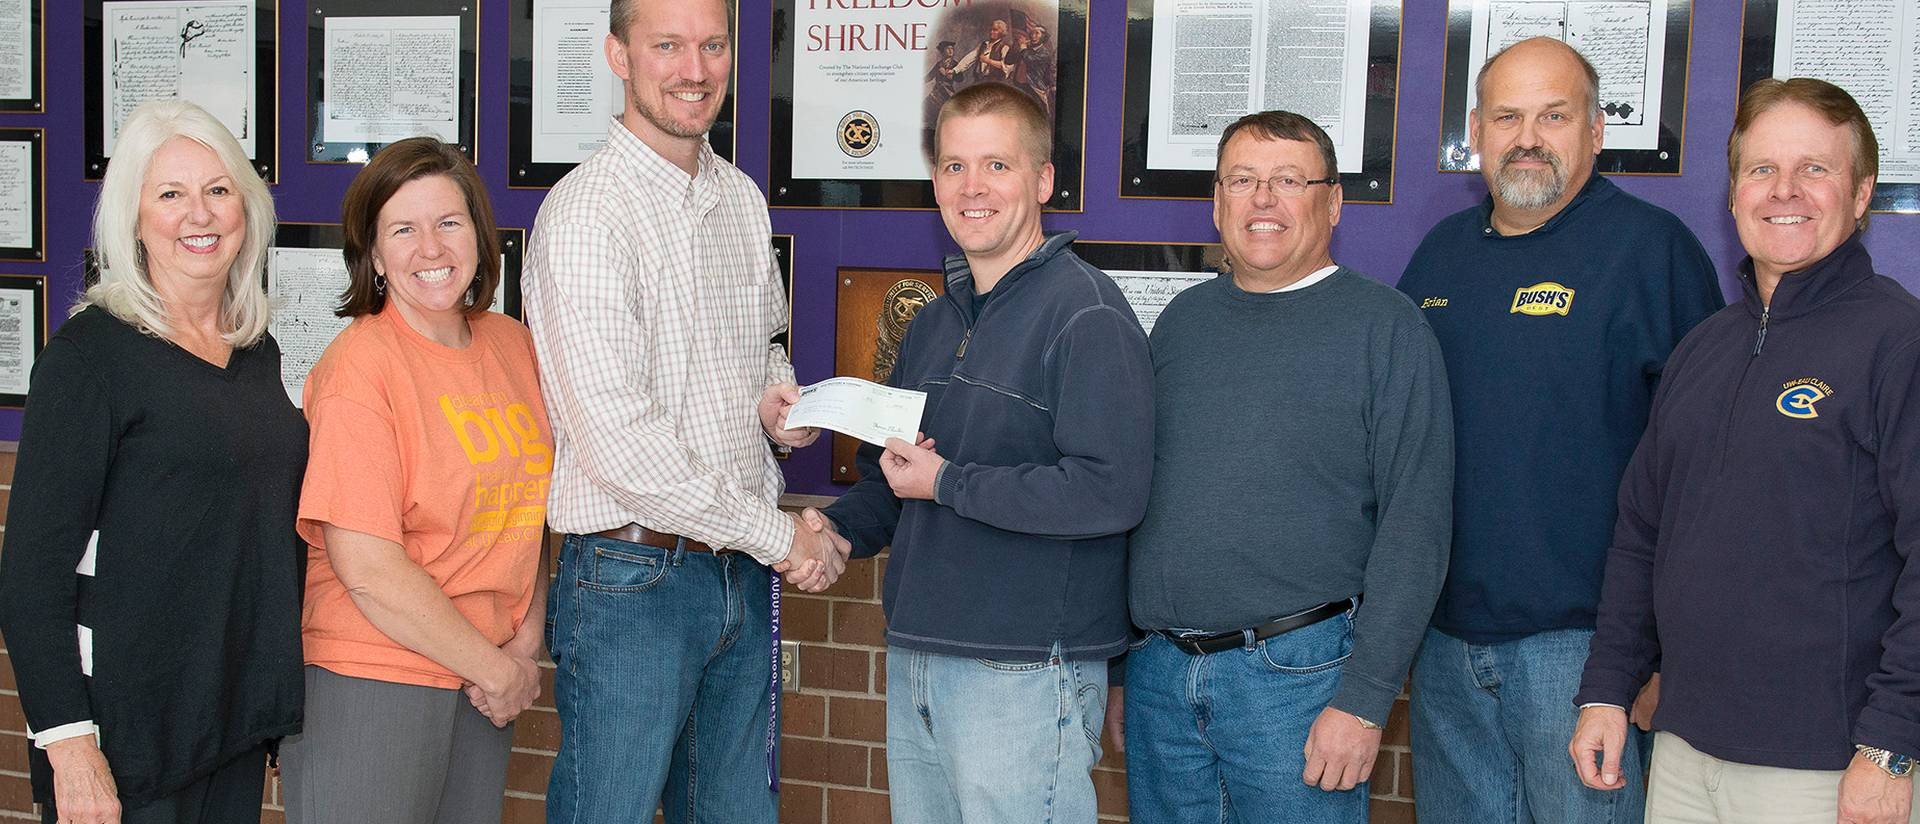 Bush Brothers & Co. of Augusta recently presented $5,000 through the UW-Eau Claire Foundation to support Blugold Beginnings programming in the Augusta schools.